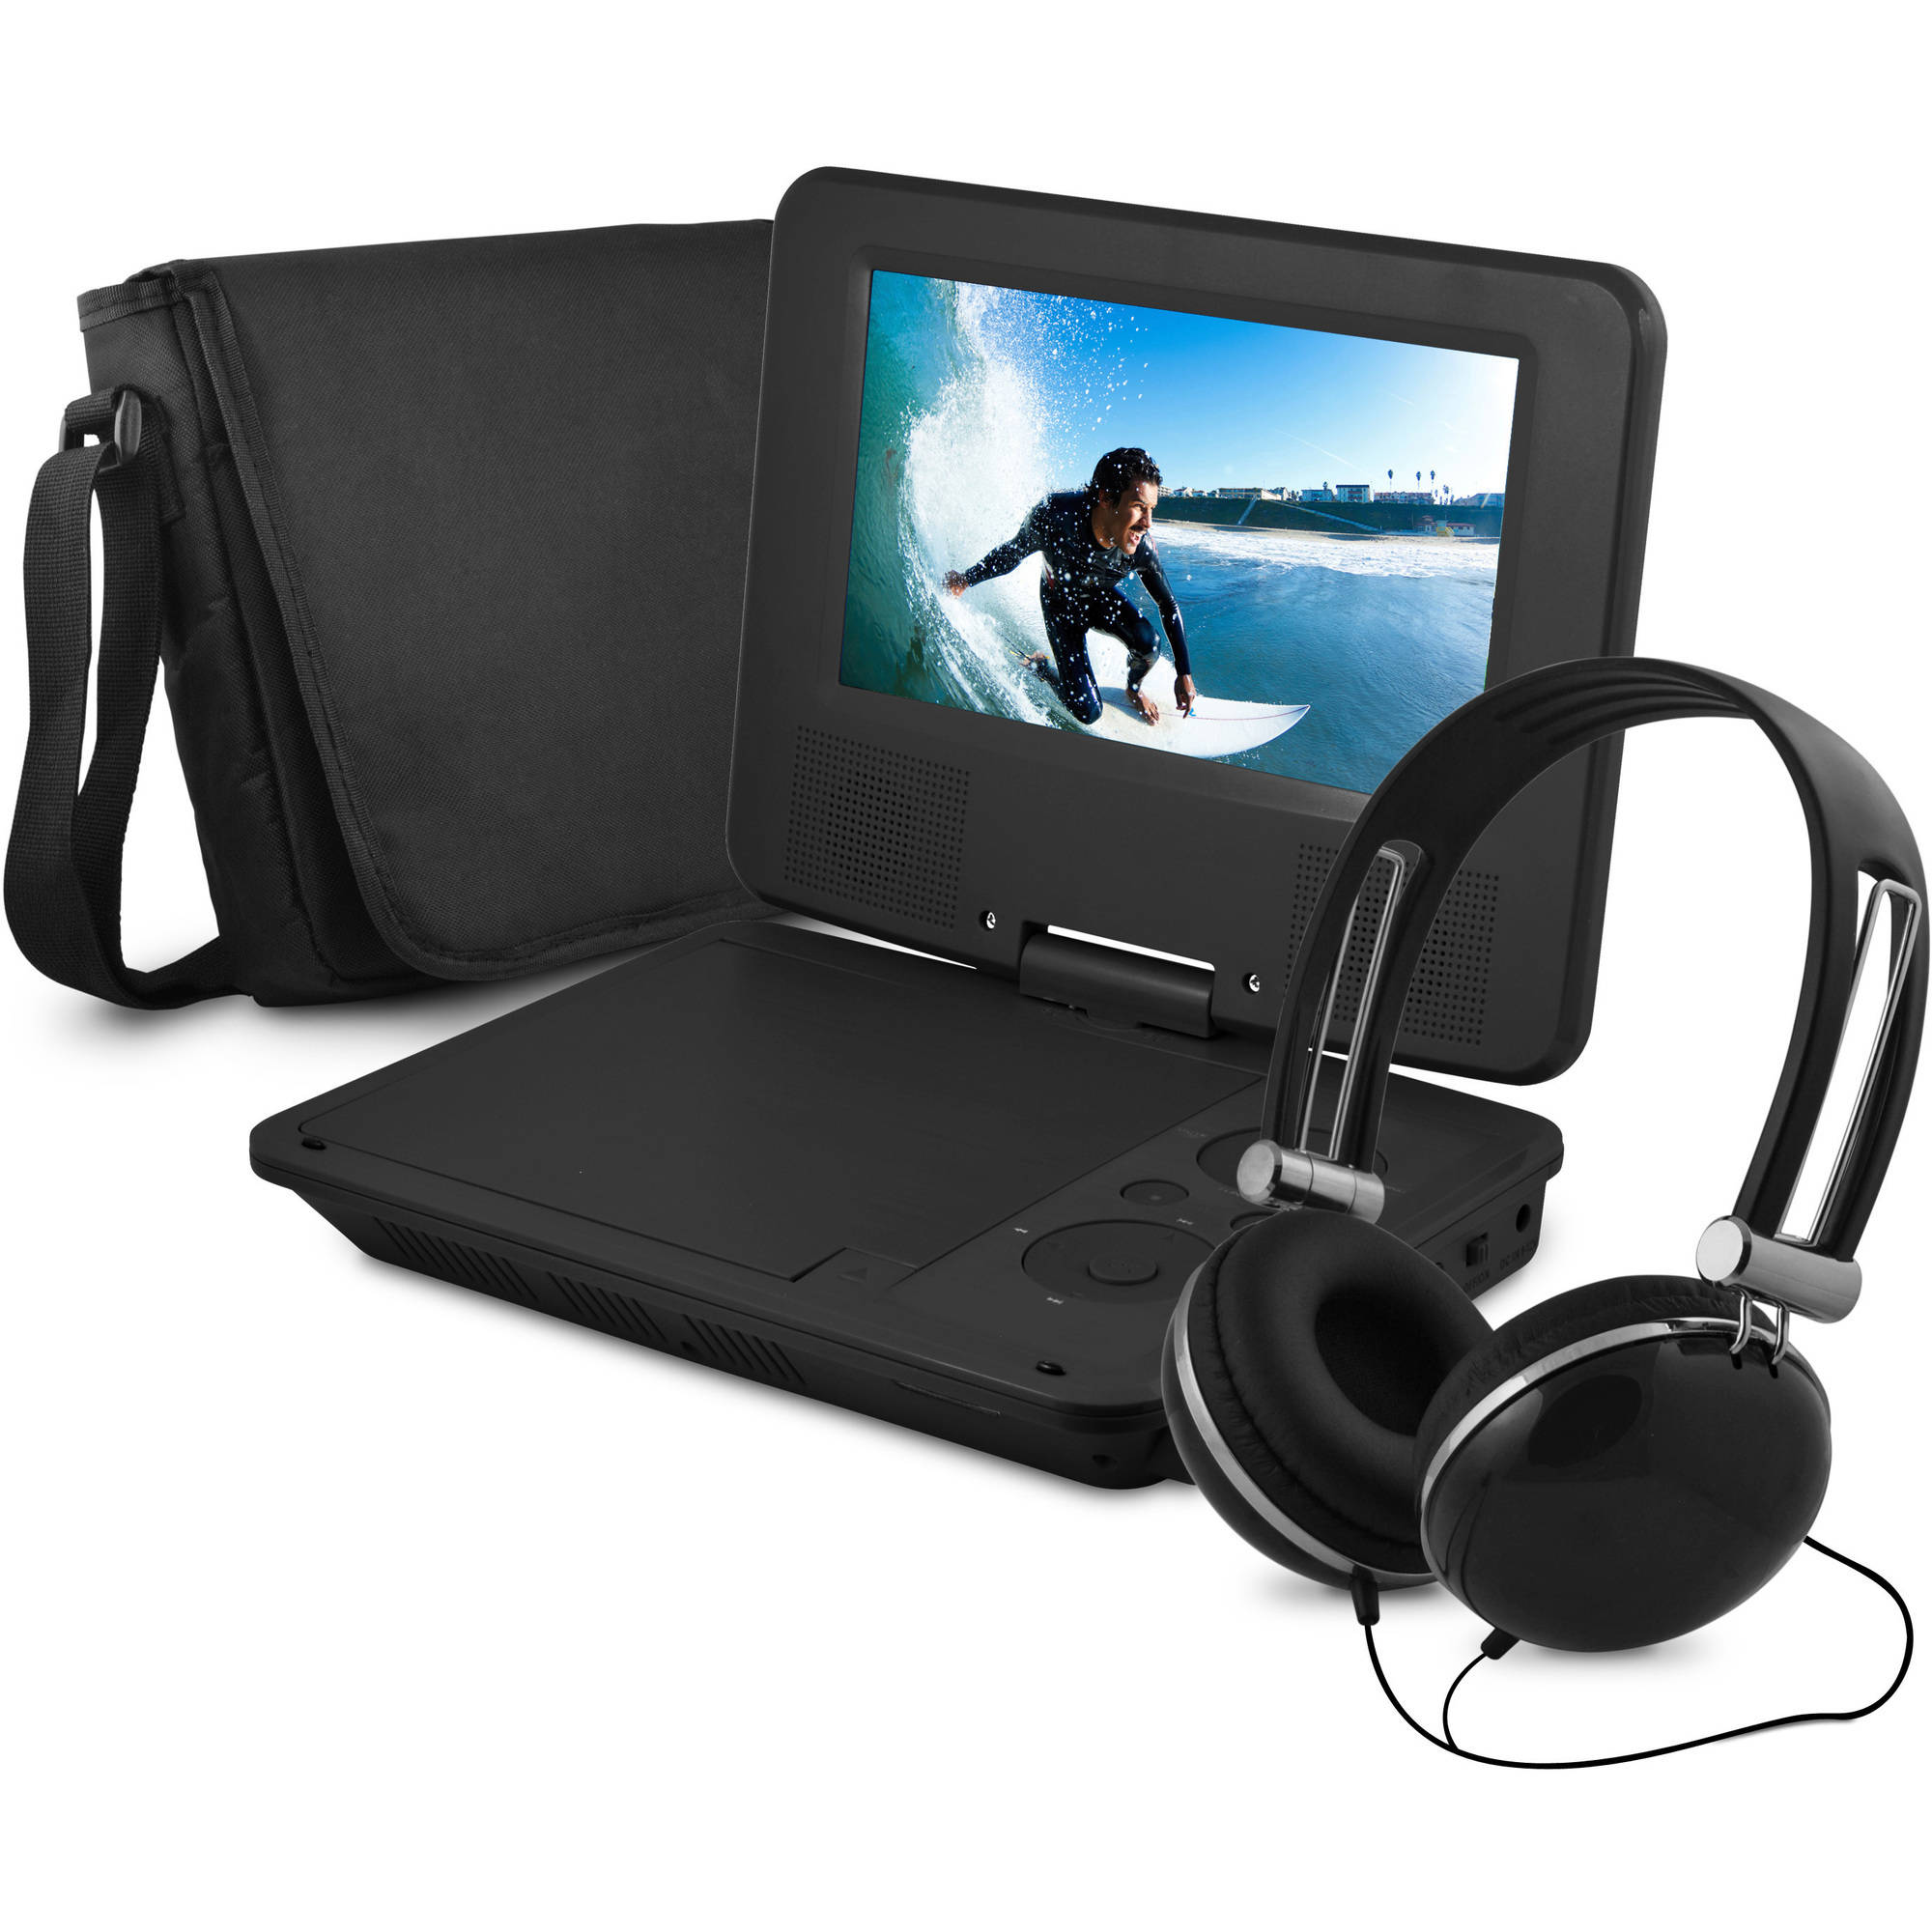 "Onn 7"" Portable Dvd Player With Matching Headphones And Bag"